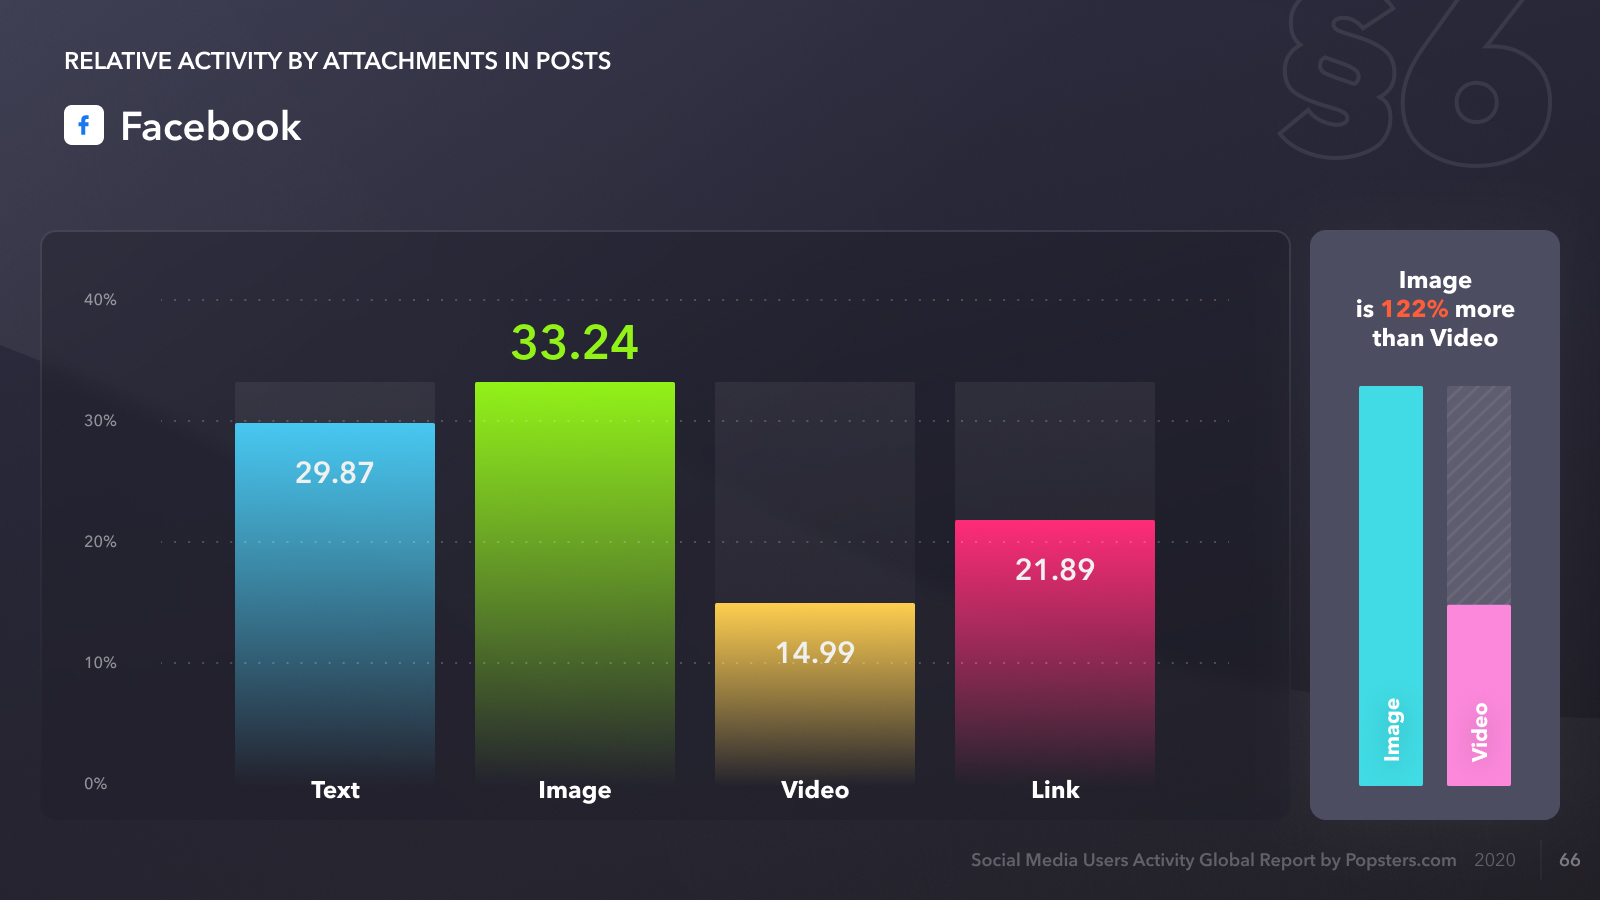 Relative activity on Facebook by attachments in posts, for 2020